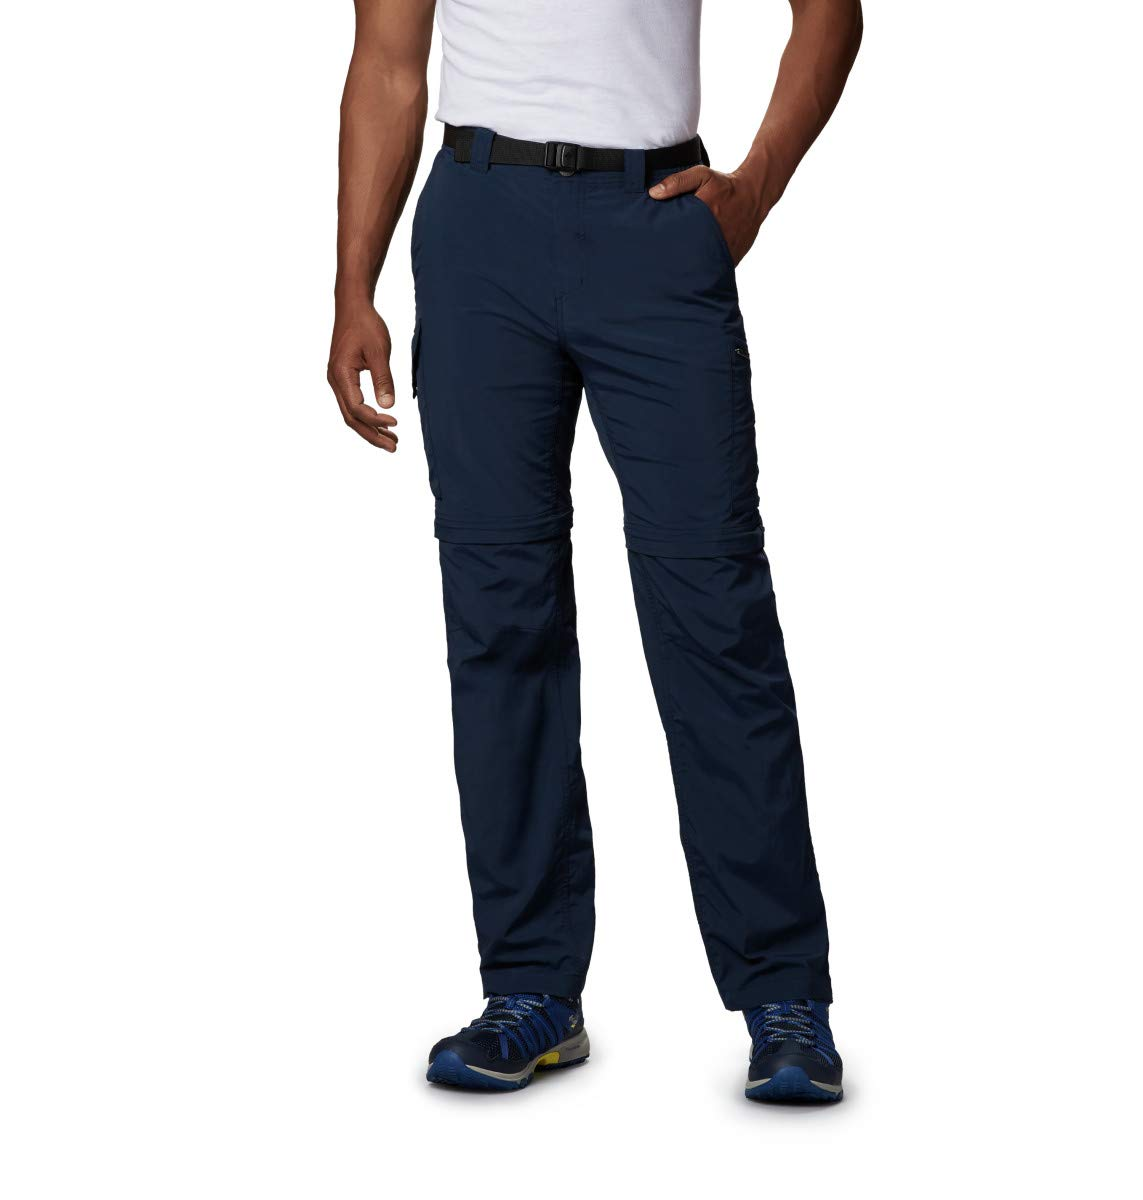 Columbia Men's Silver Ridge Convertible Pant, Breathable, UPF 50 Sun Protection, Collegiate Navy, 44x30 by Columbia